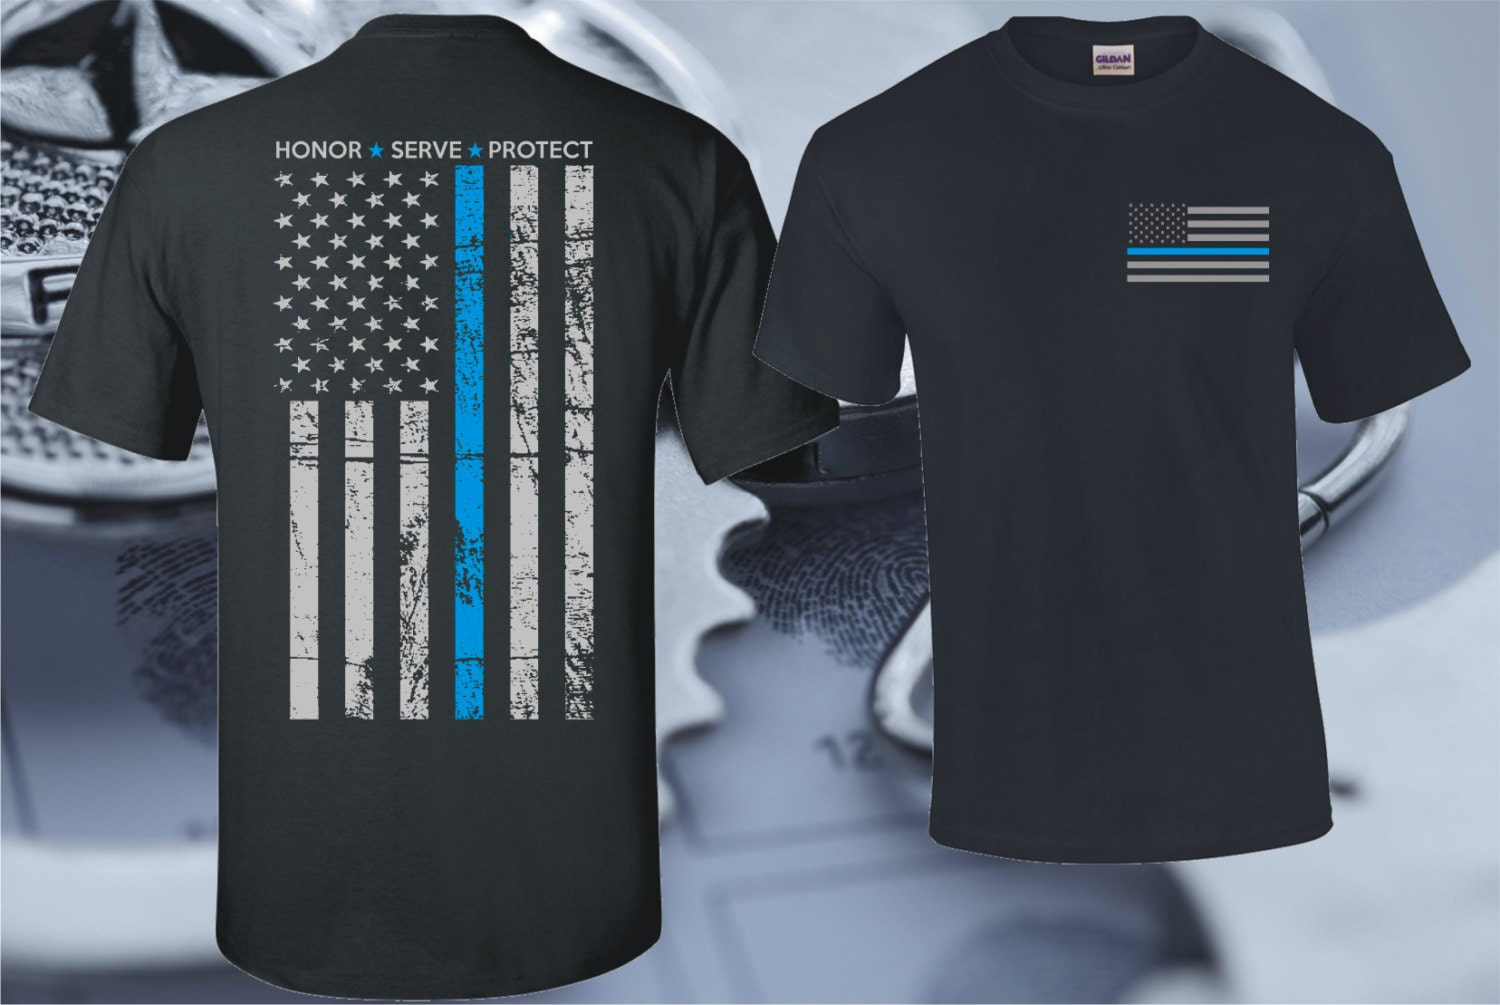 thin blue line honor serve protect t shirt by. Black Bedroom Furniture Sets. Home Design Ideas